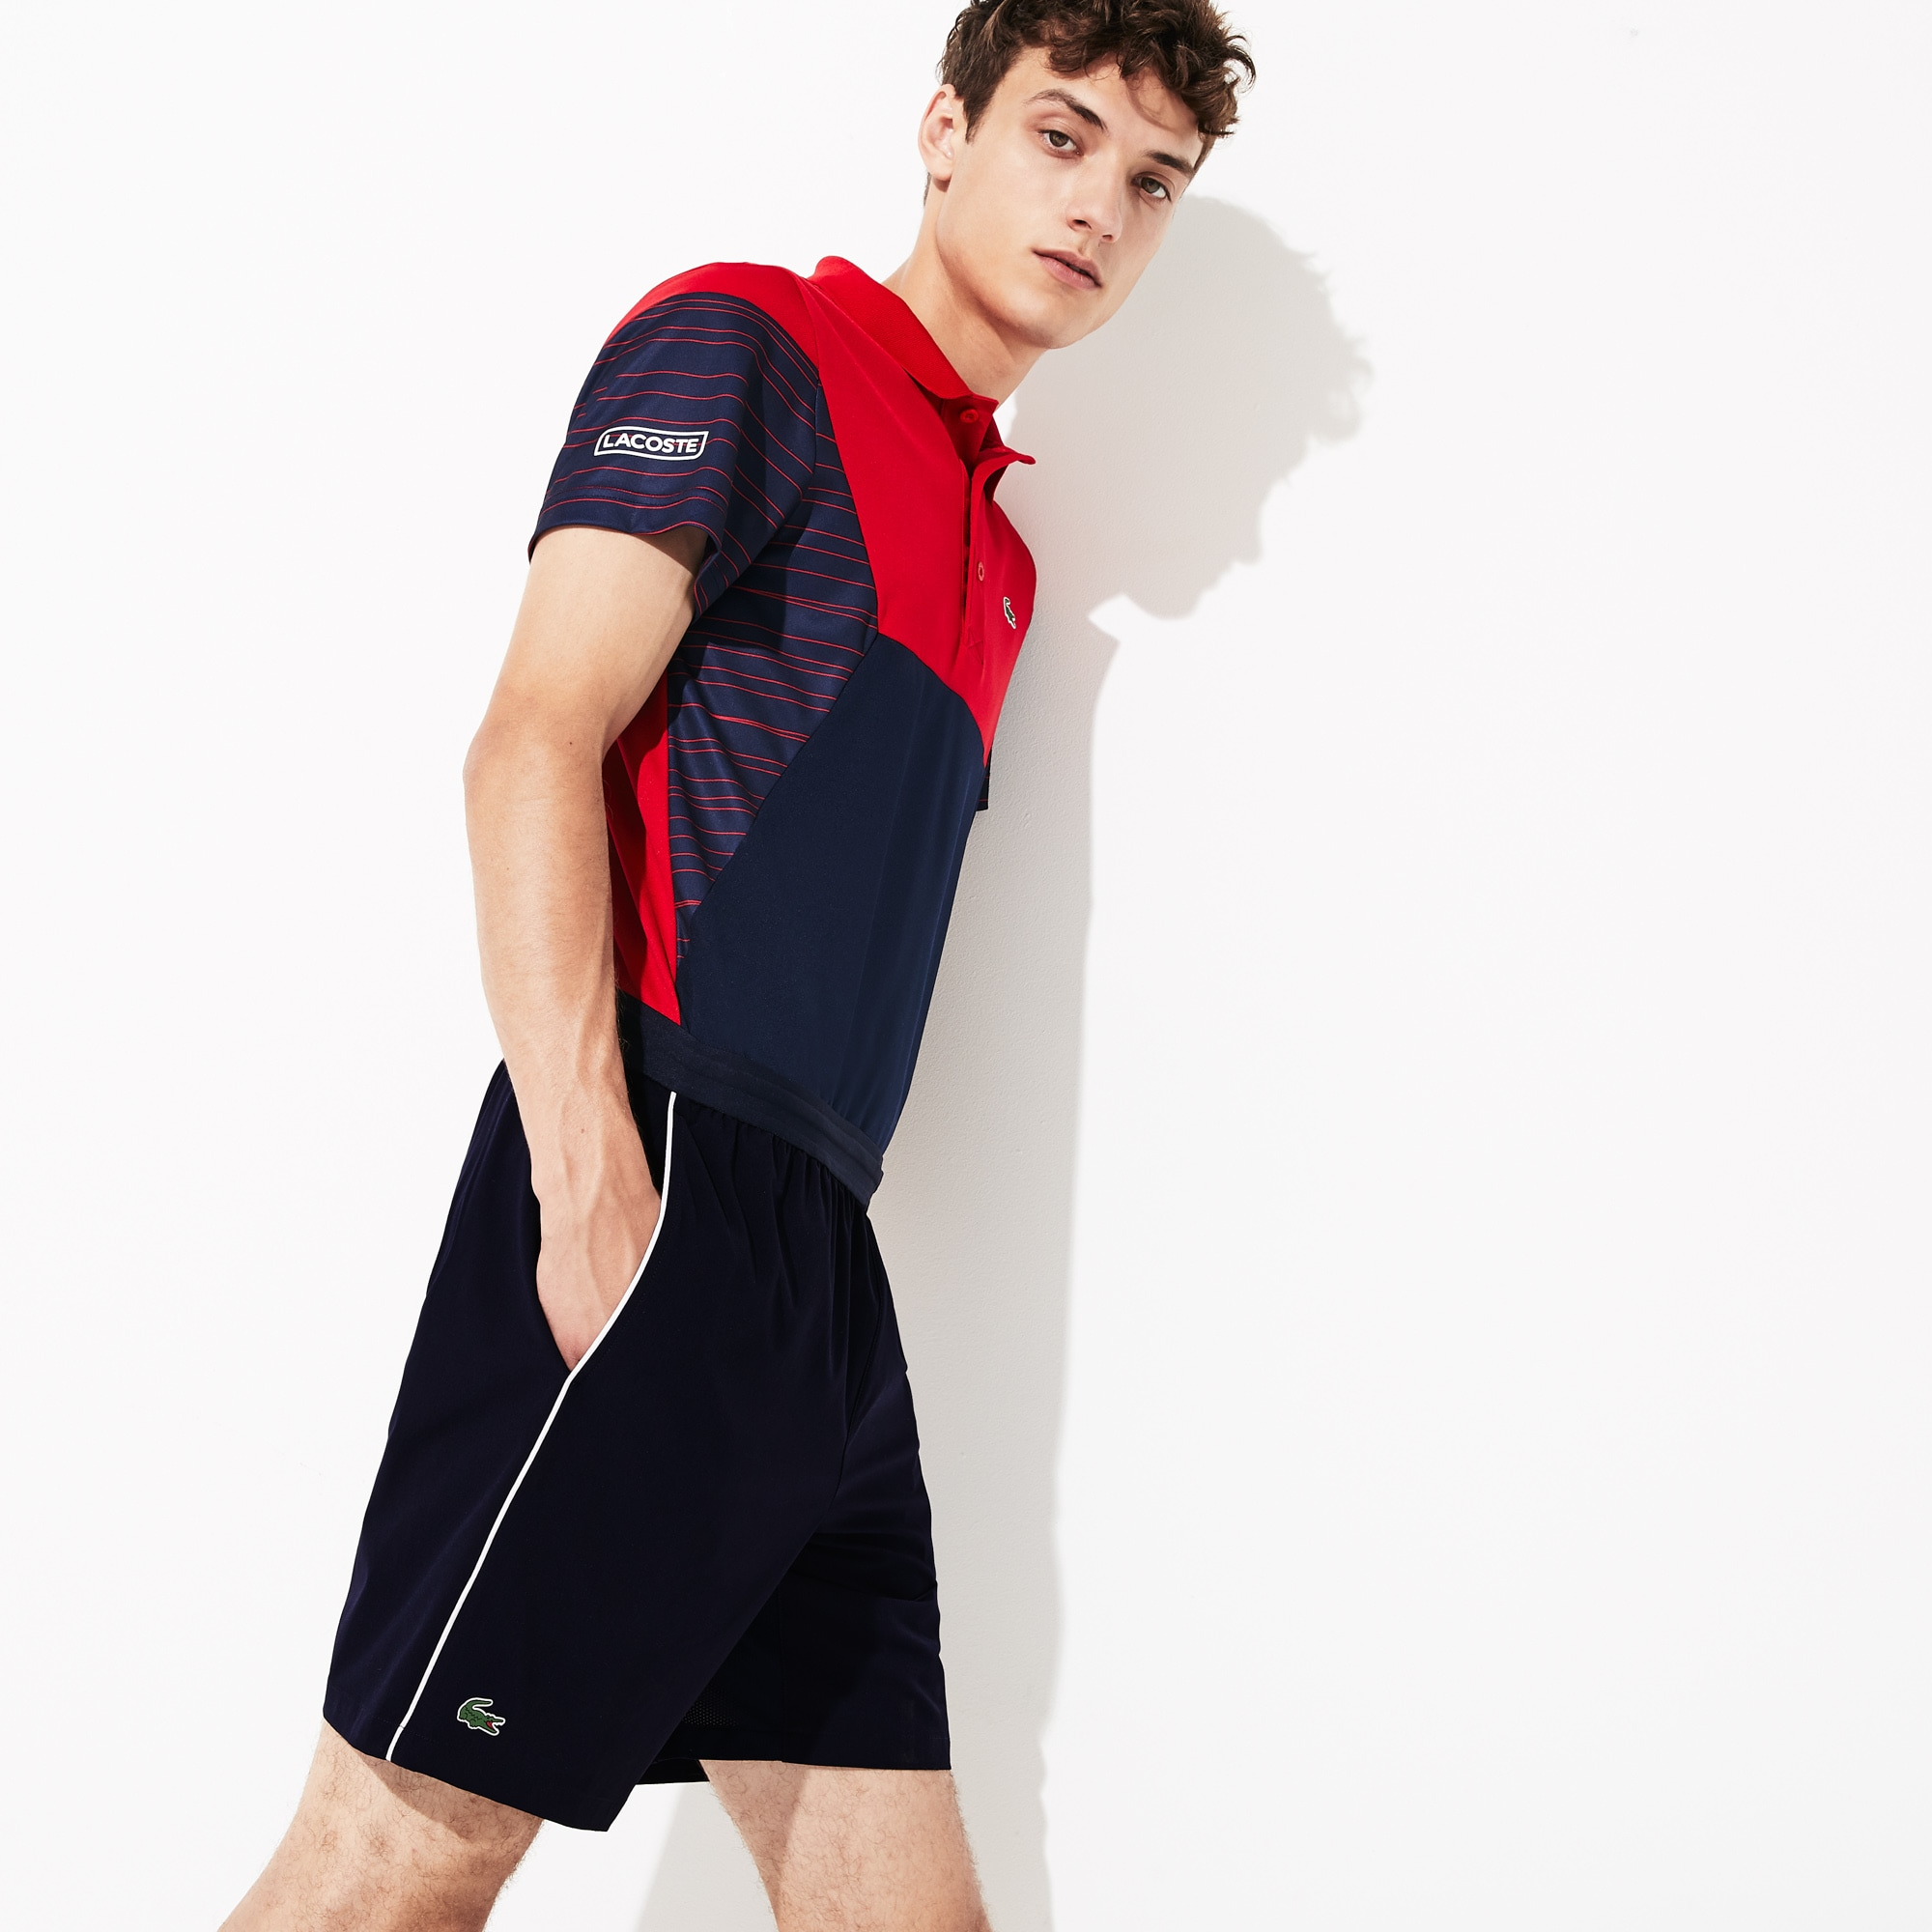 Men S Lacoste Sport Novak Djokovic Support With Style Collection Piped Stretch Technical Shorts Lacoste